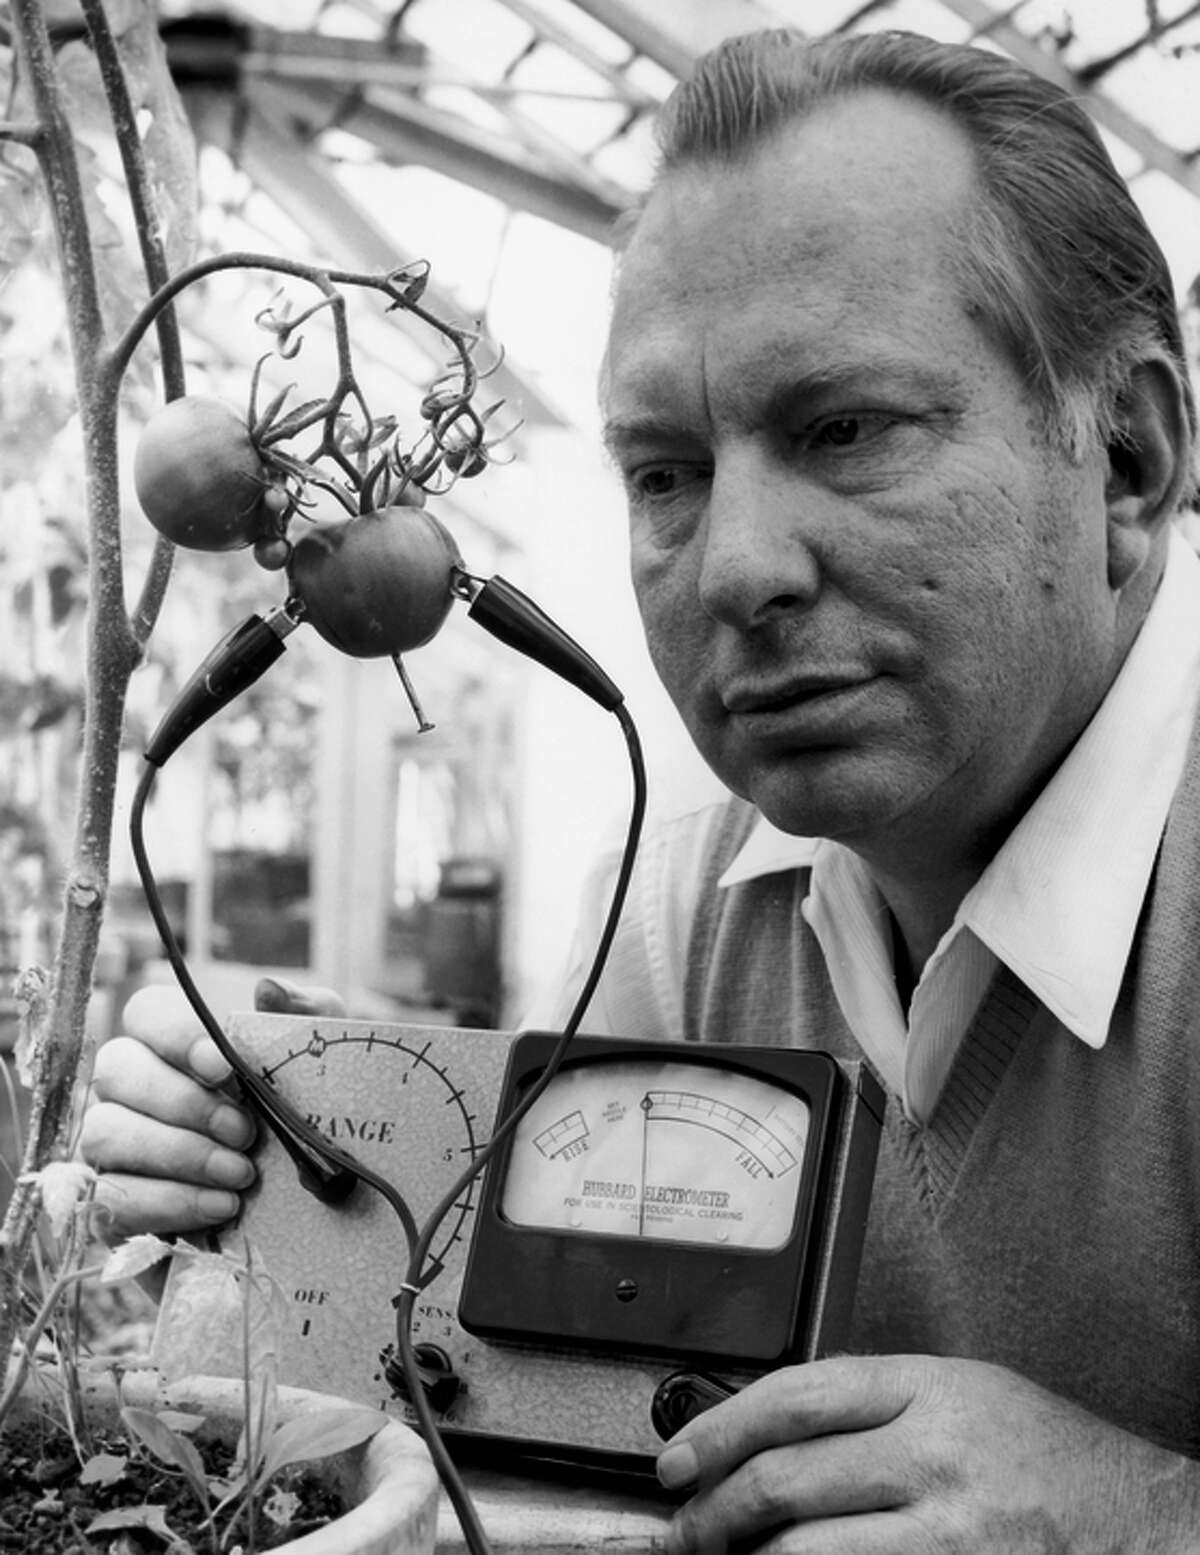 Science-fiction writer L. Ron Hubbard founded Scientology.